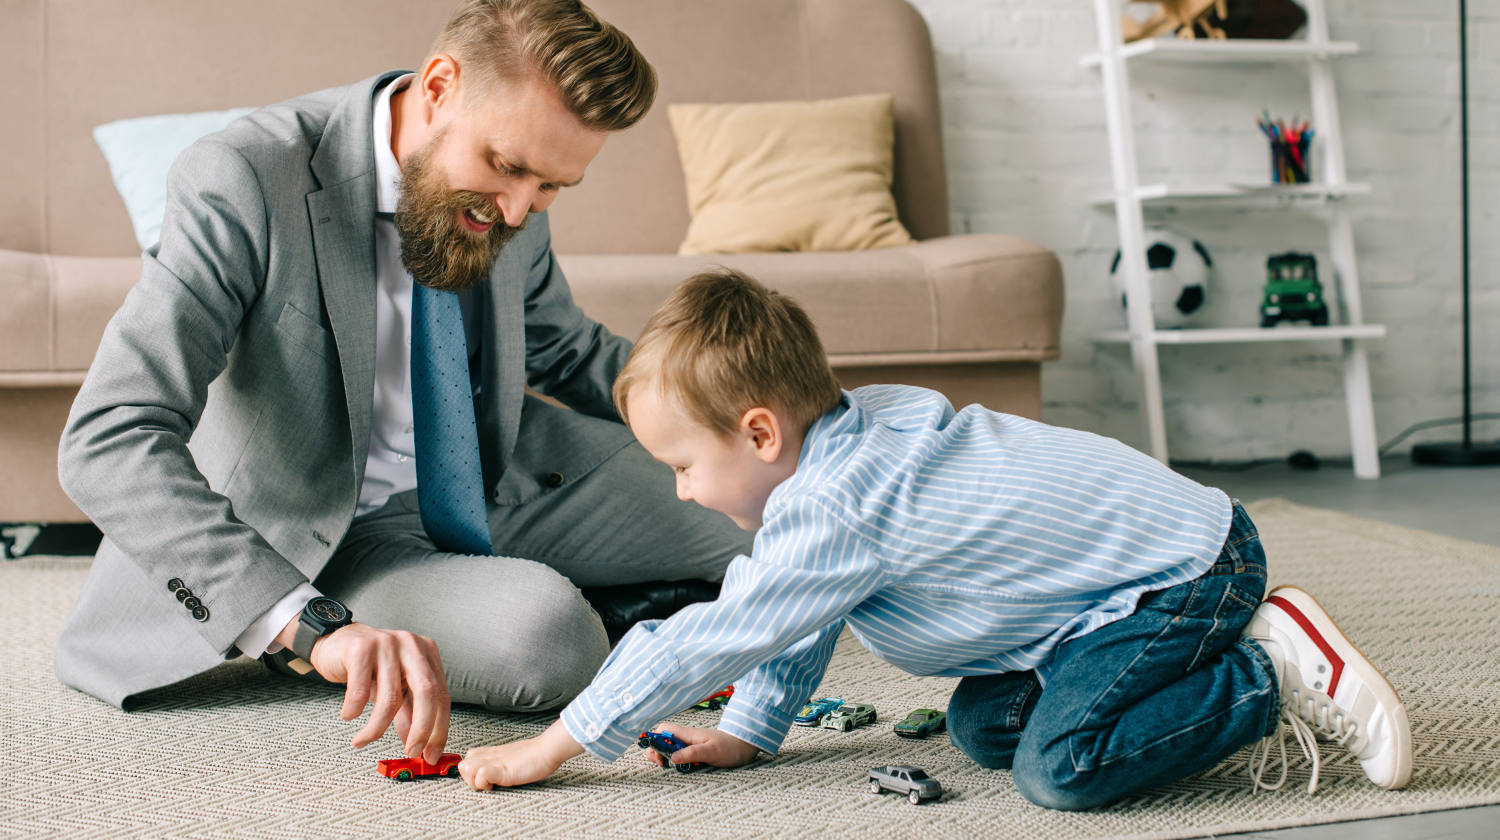 Businessman in suit and little son playing with toy cars on floor at home | How to Become a Cool Working Dad | what makes a good dad | Featured